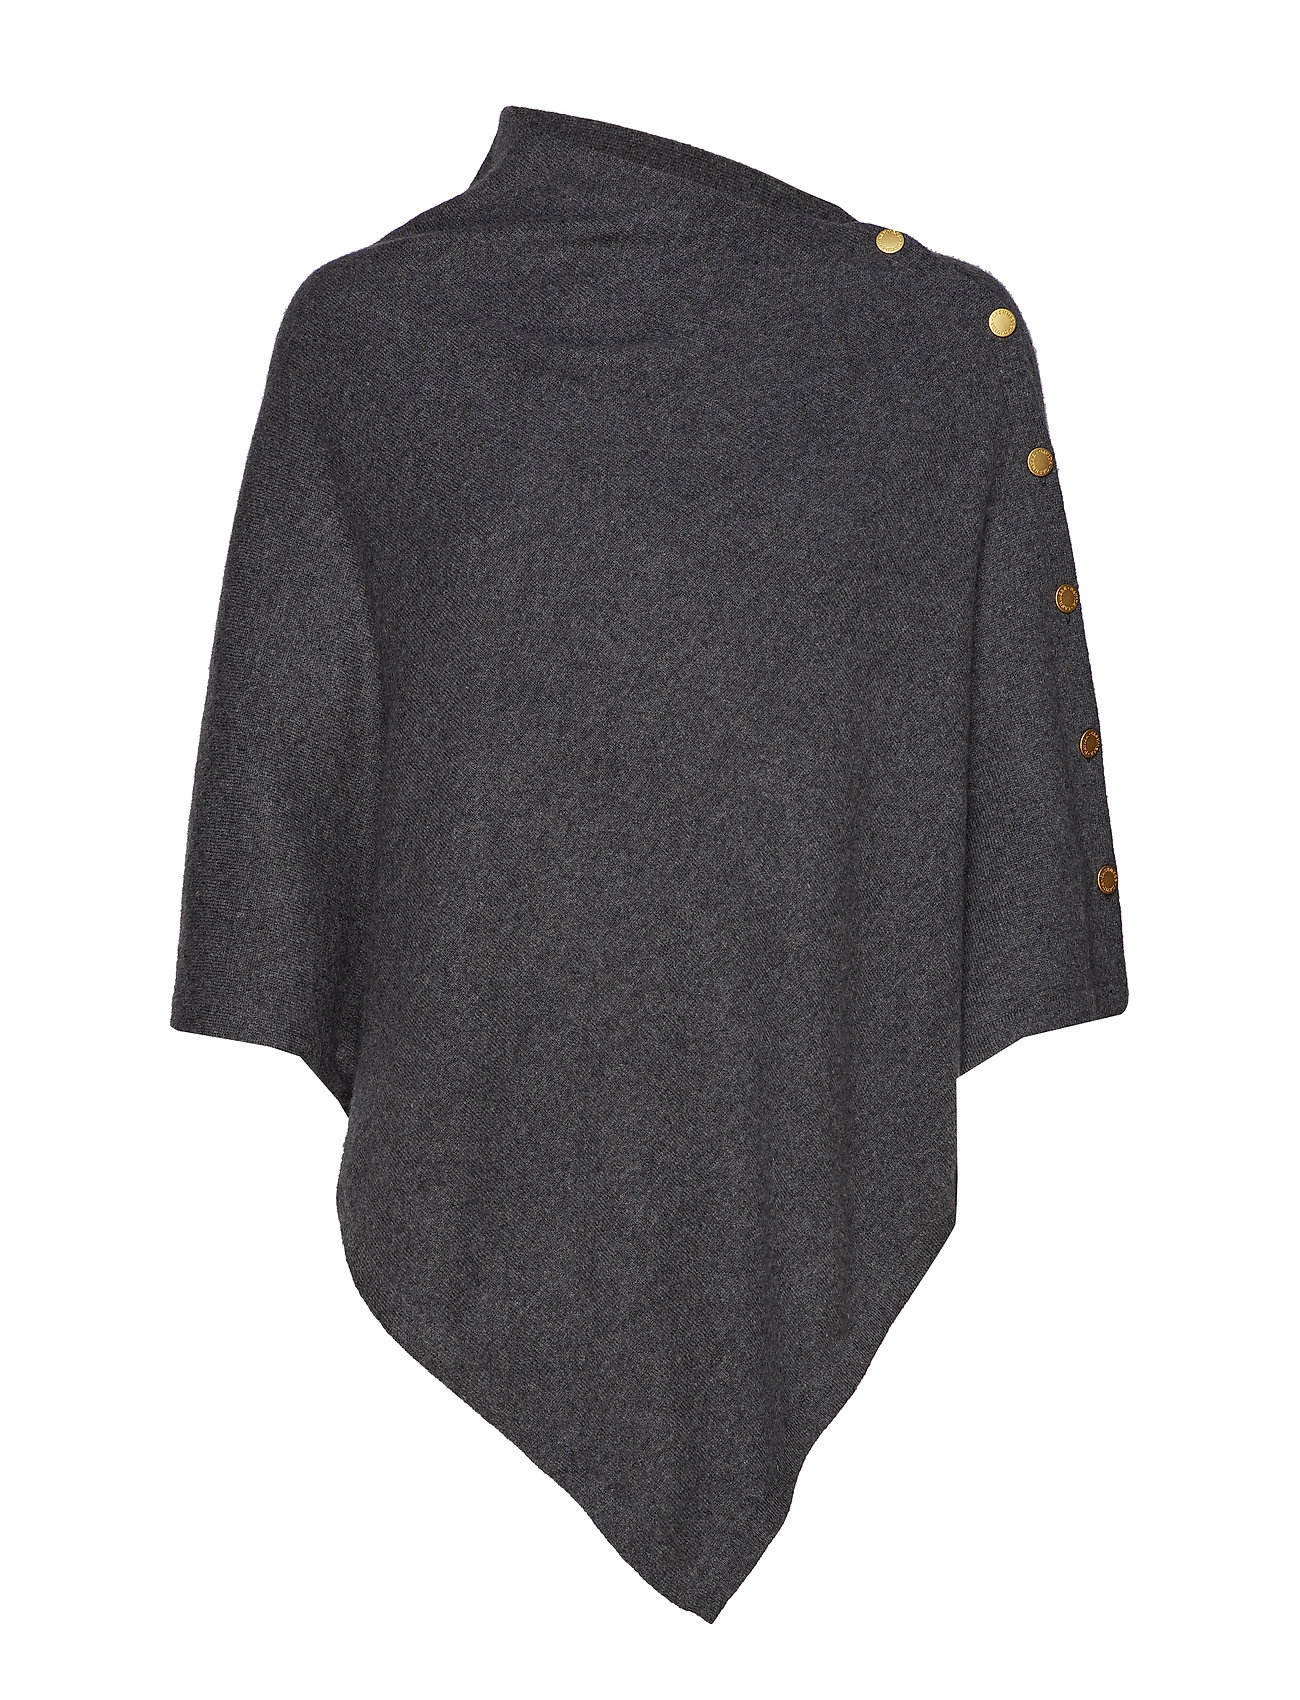 Davida Cashmere Poncho with Gold Buttons - DARK GREY